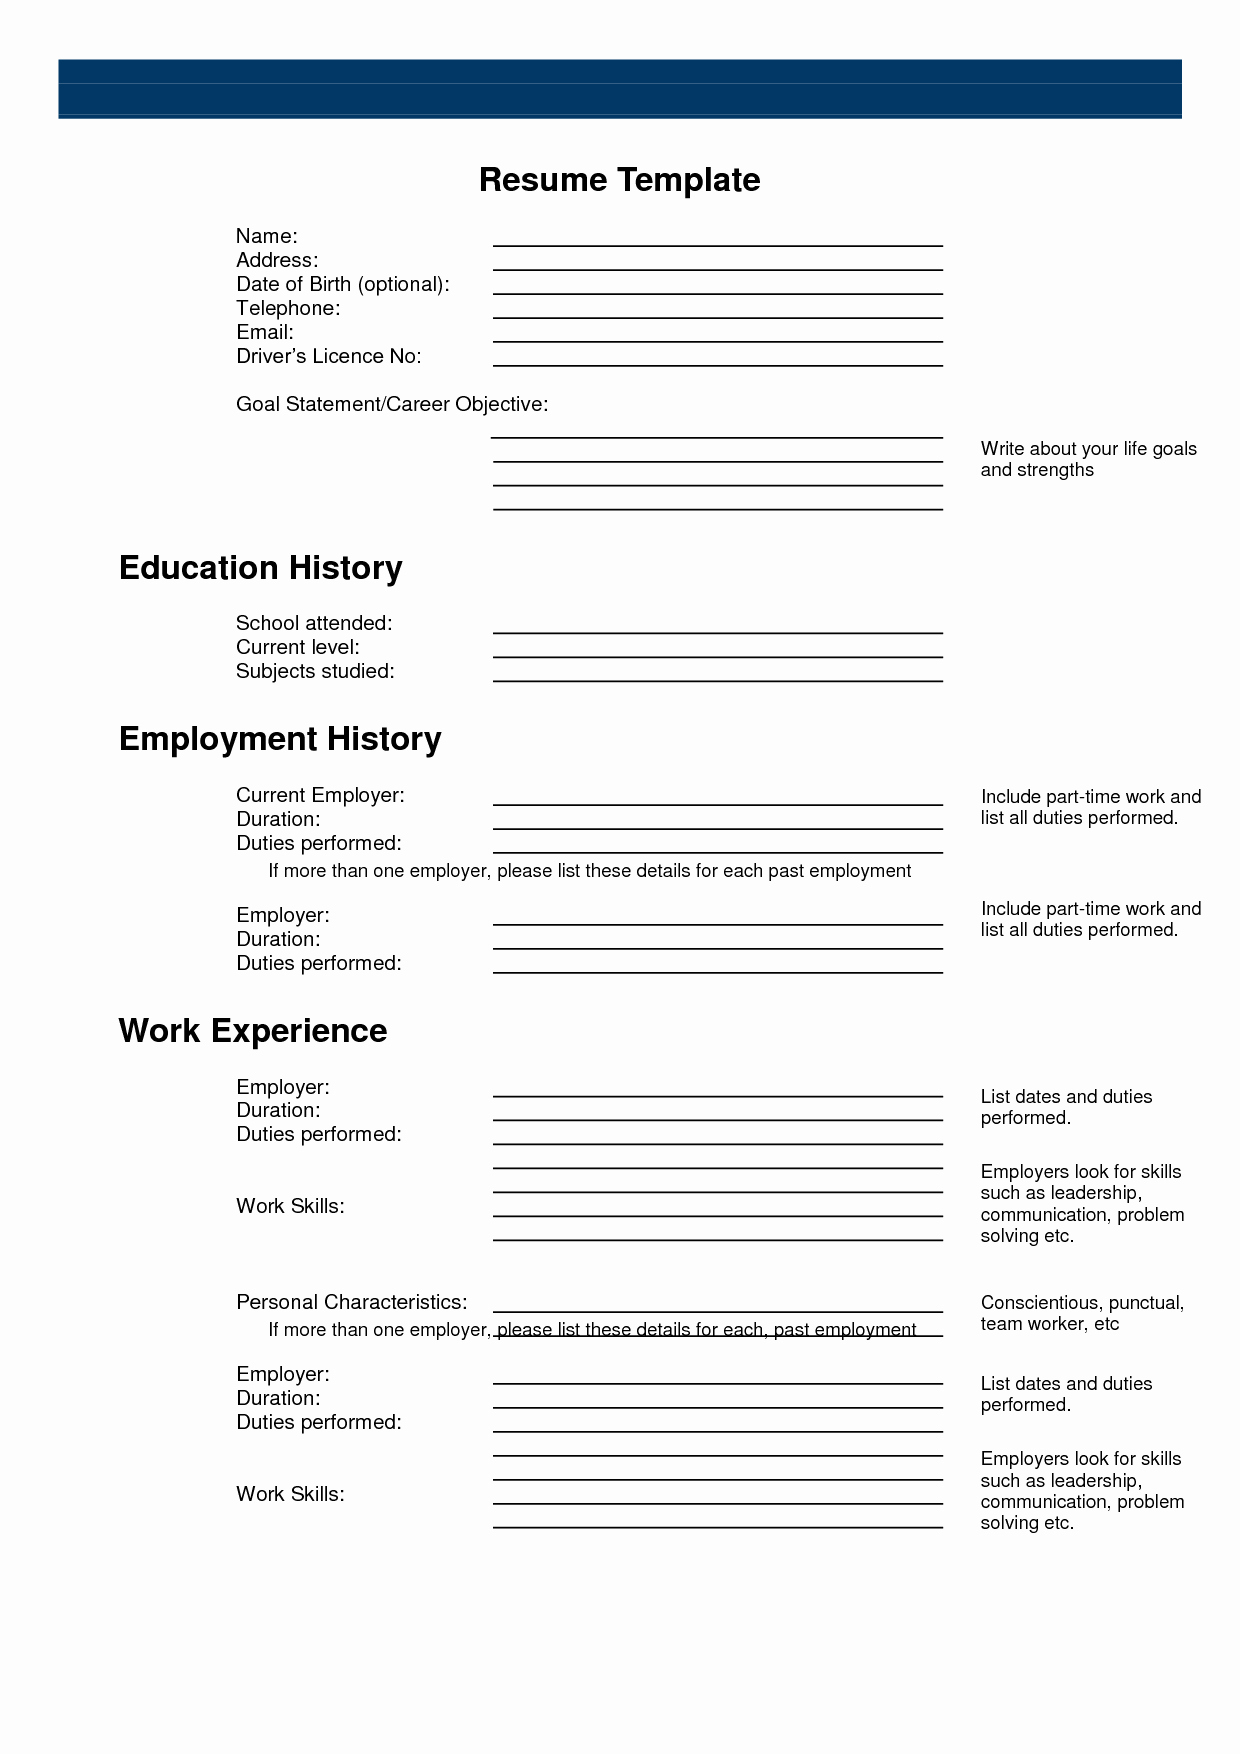 Free Printable Fill In The Blank Resume Templates Of Resume Forms - Free Printable Blank Resume